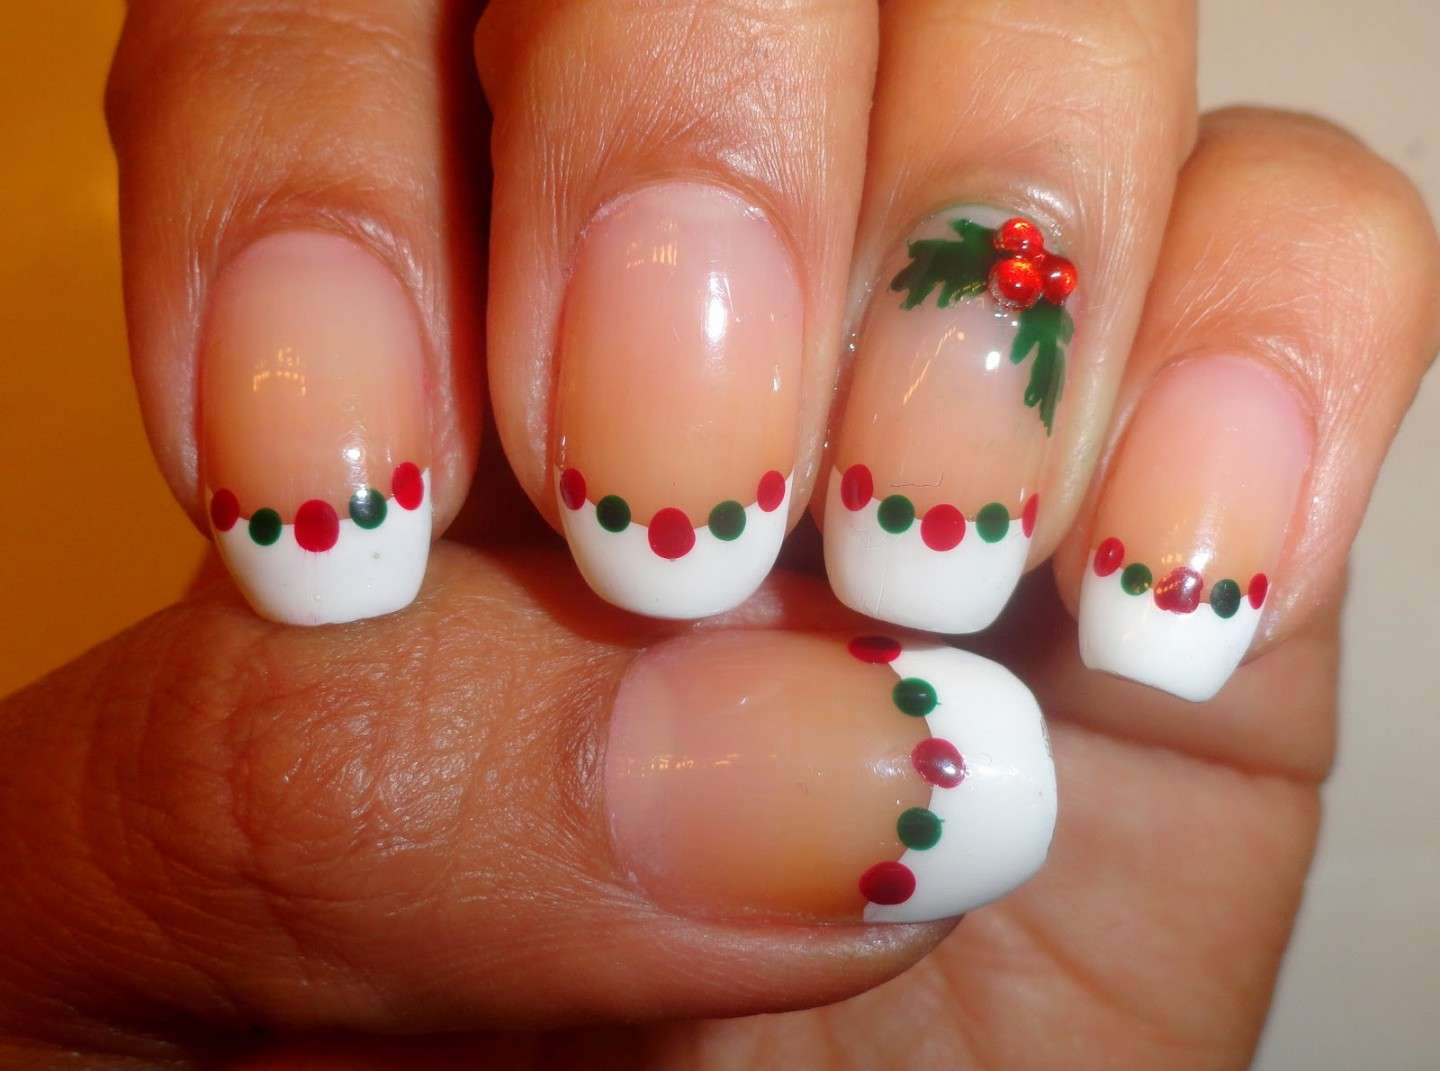 French manicure con vischio